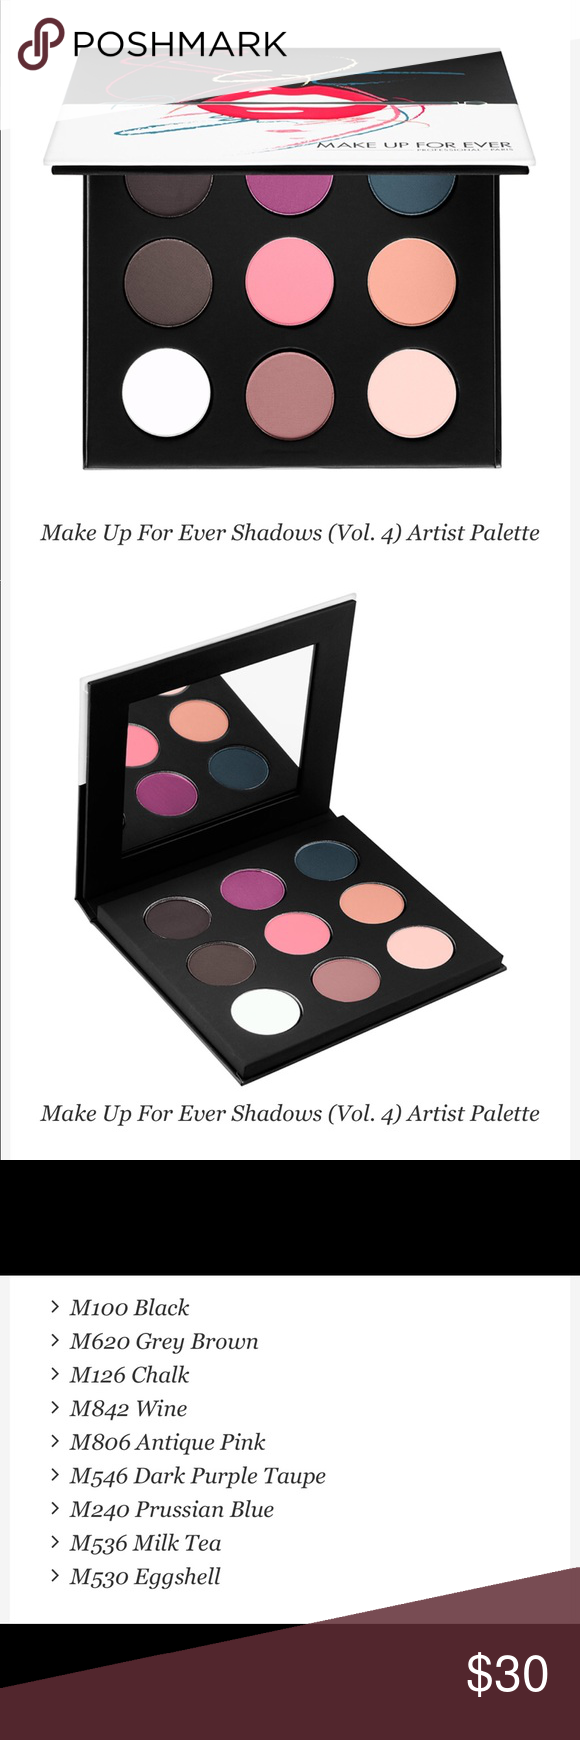 Make Up For Ever 9 Artist Shadow Palette 4 Make up